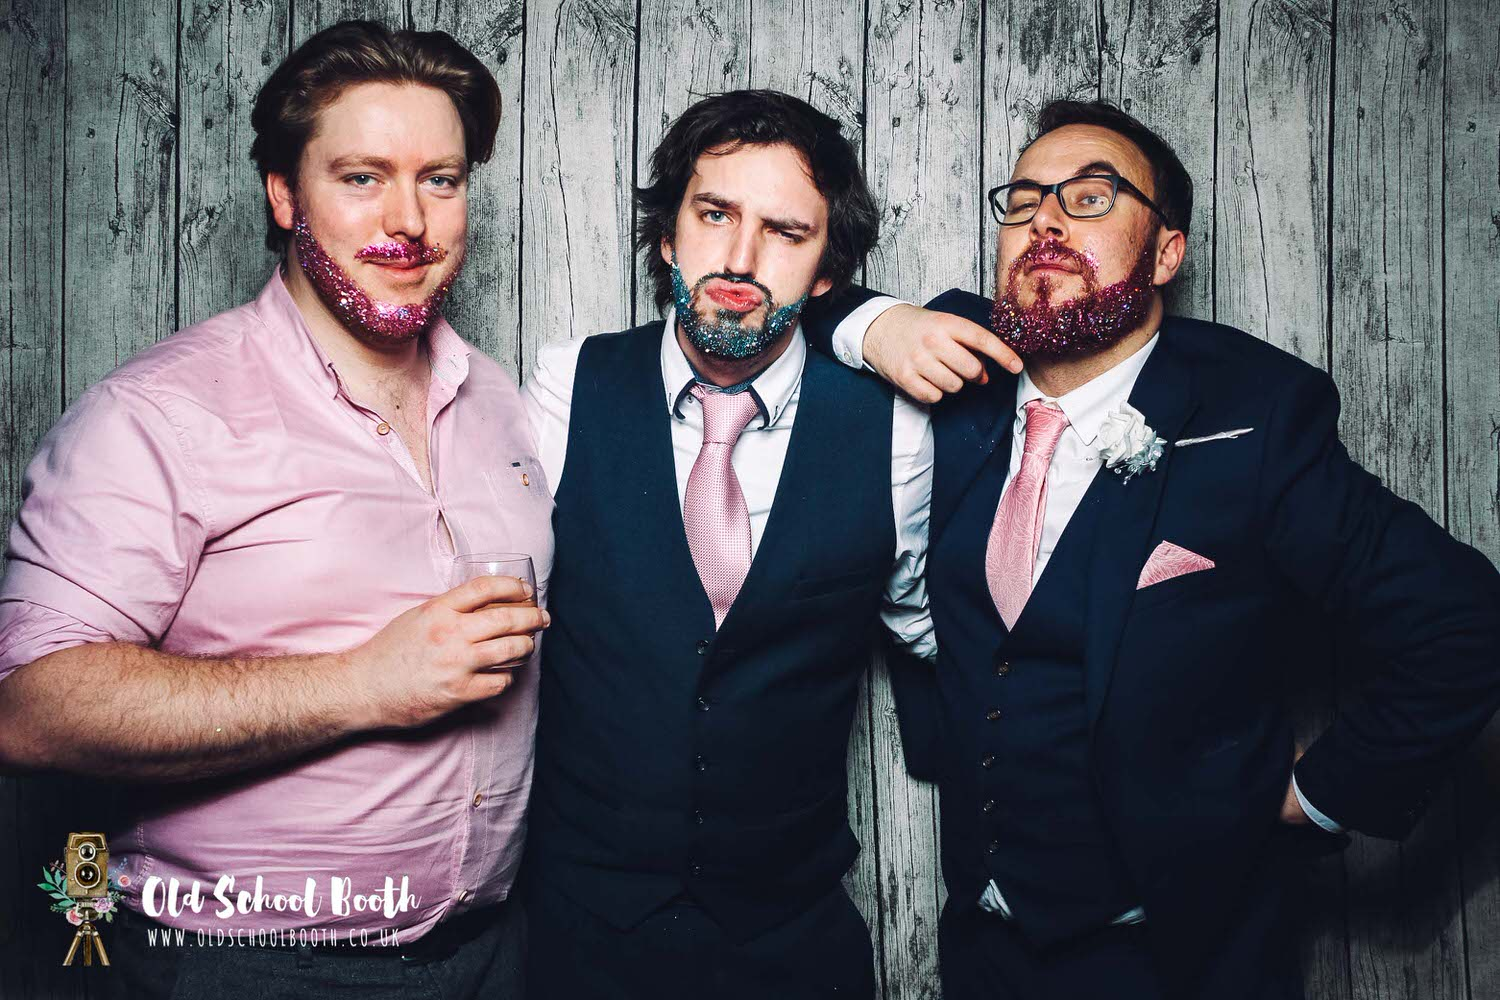 retro photo booth hire